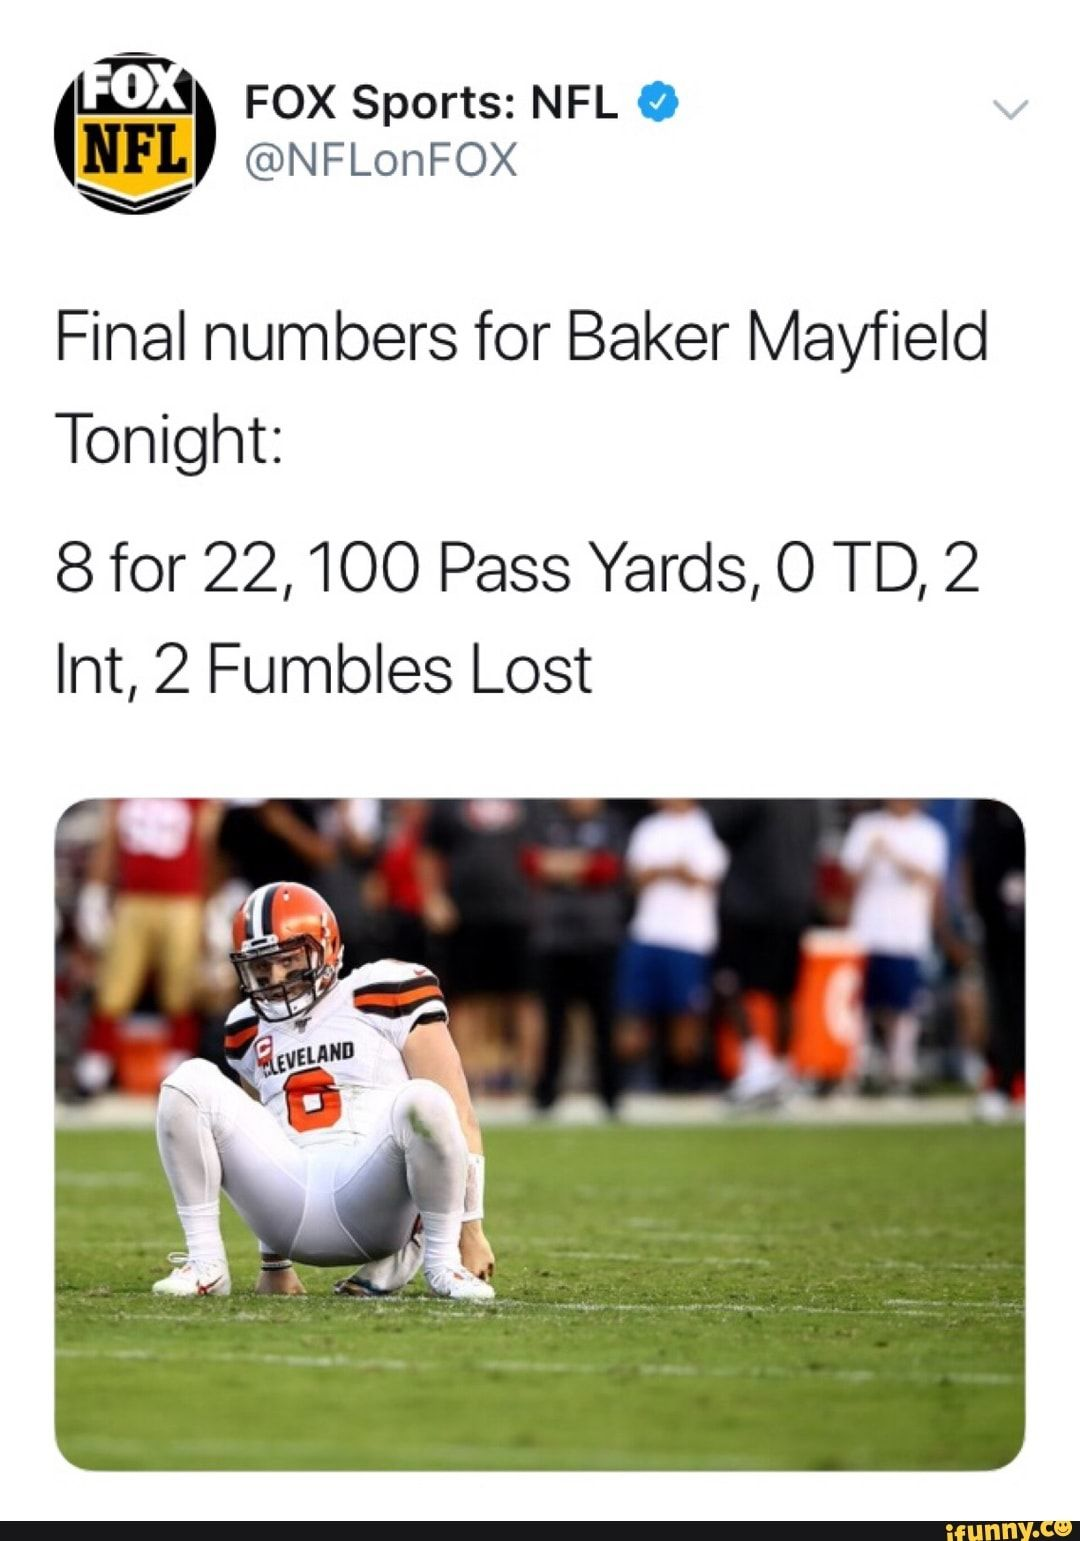 Final numbers for Baker Mayfield Tonight 8 for 22, 100